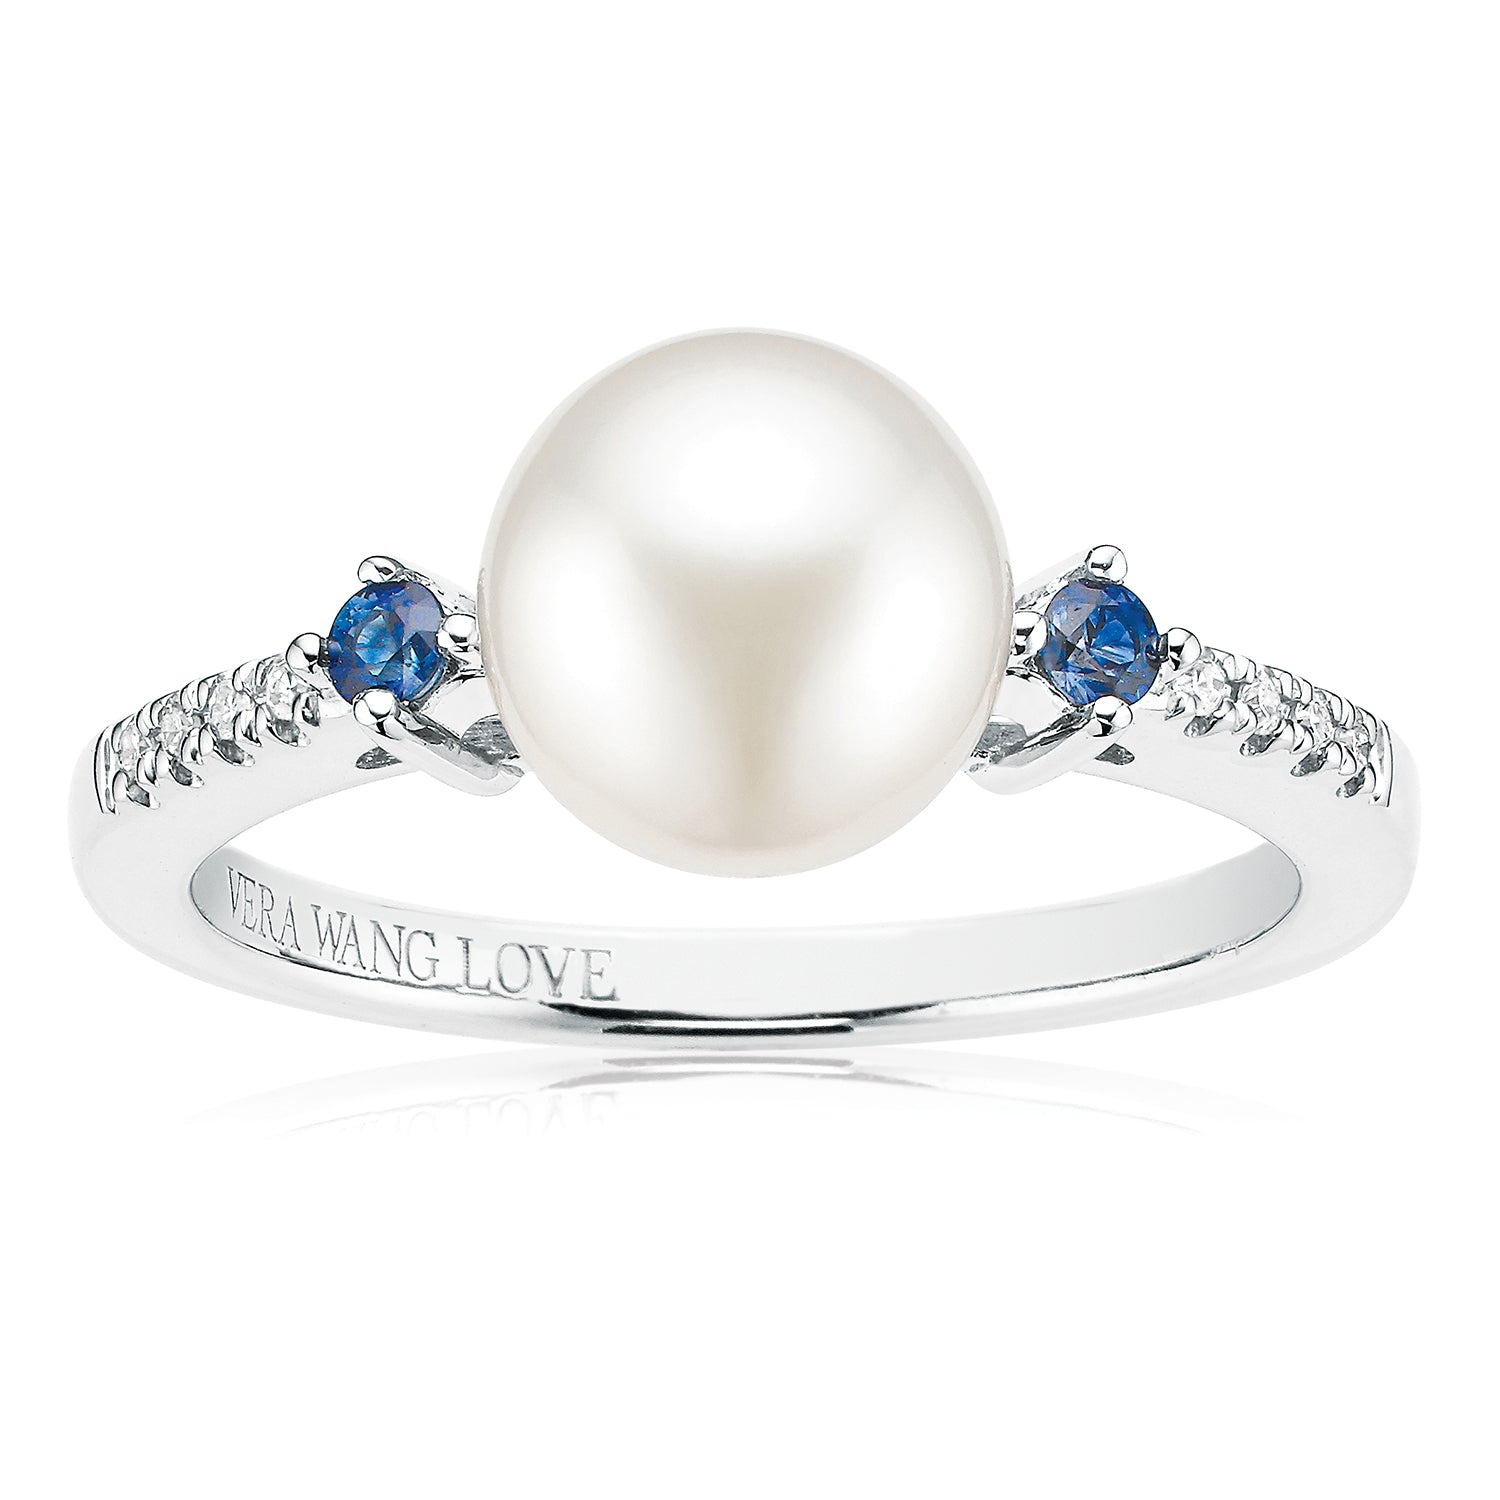 Vera Wang Love Sterling Silver Diamond Set Fresh Water Pearl & Sapphire